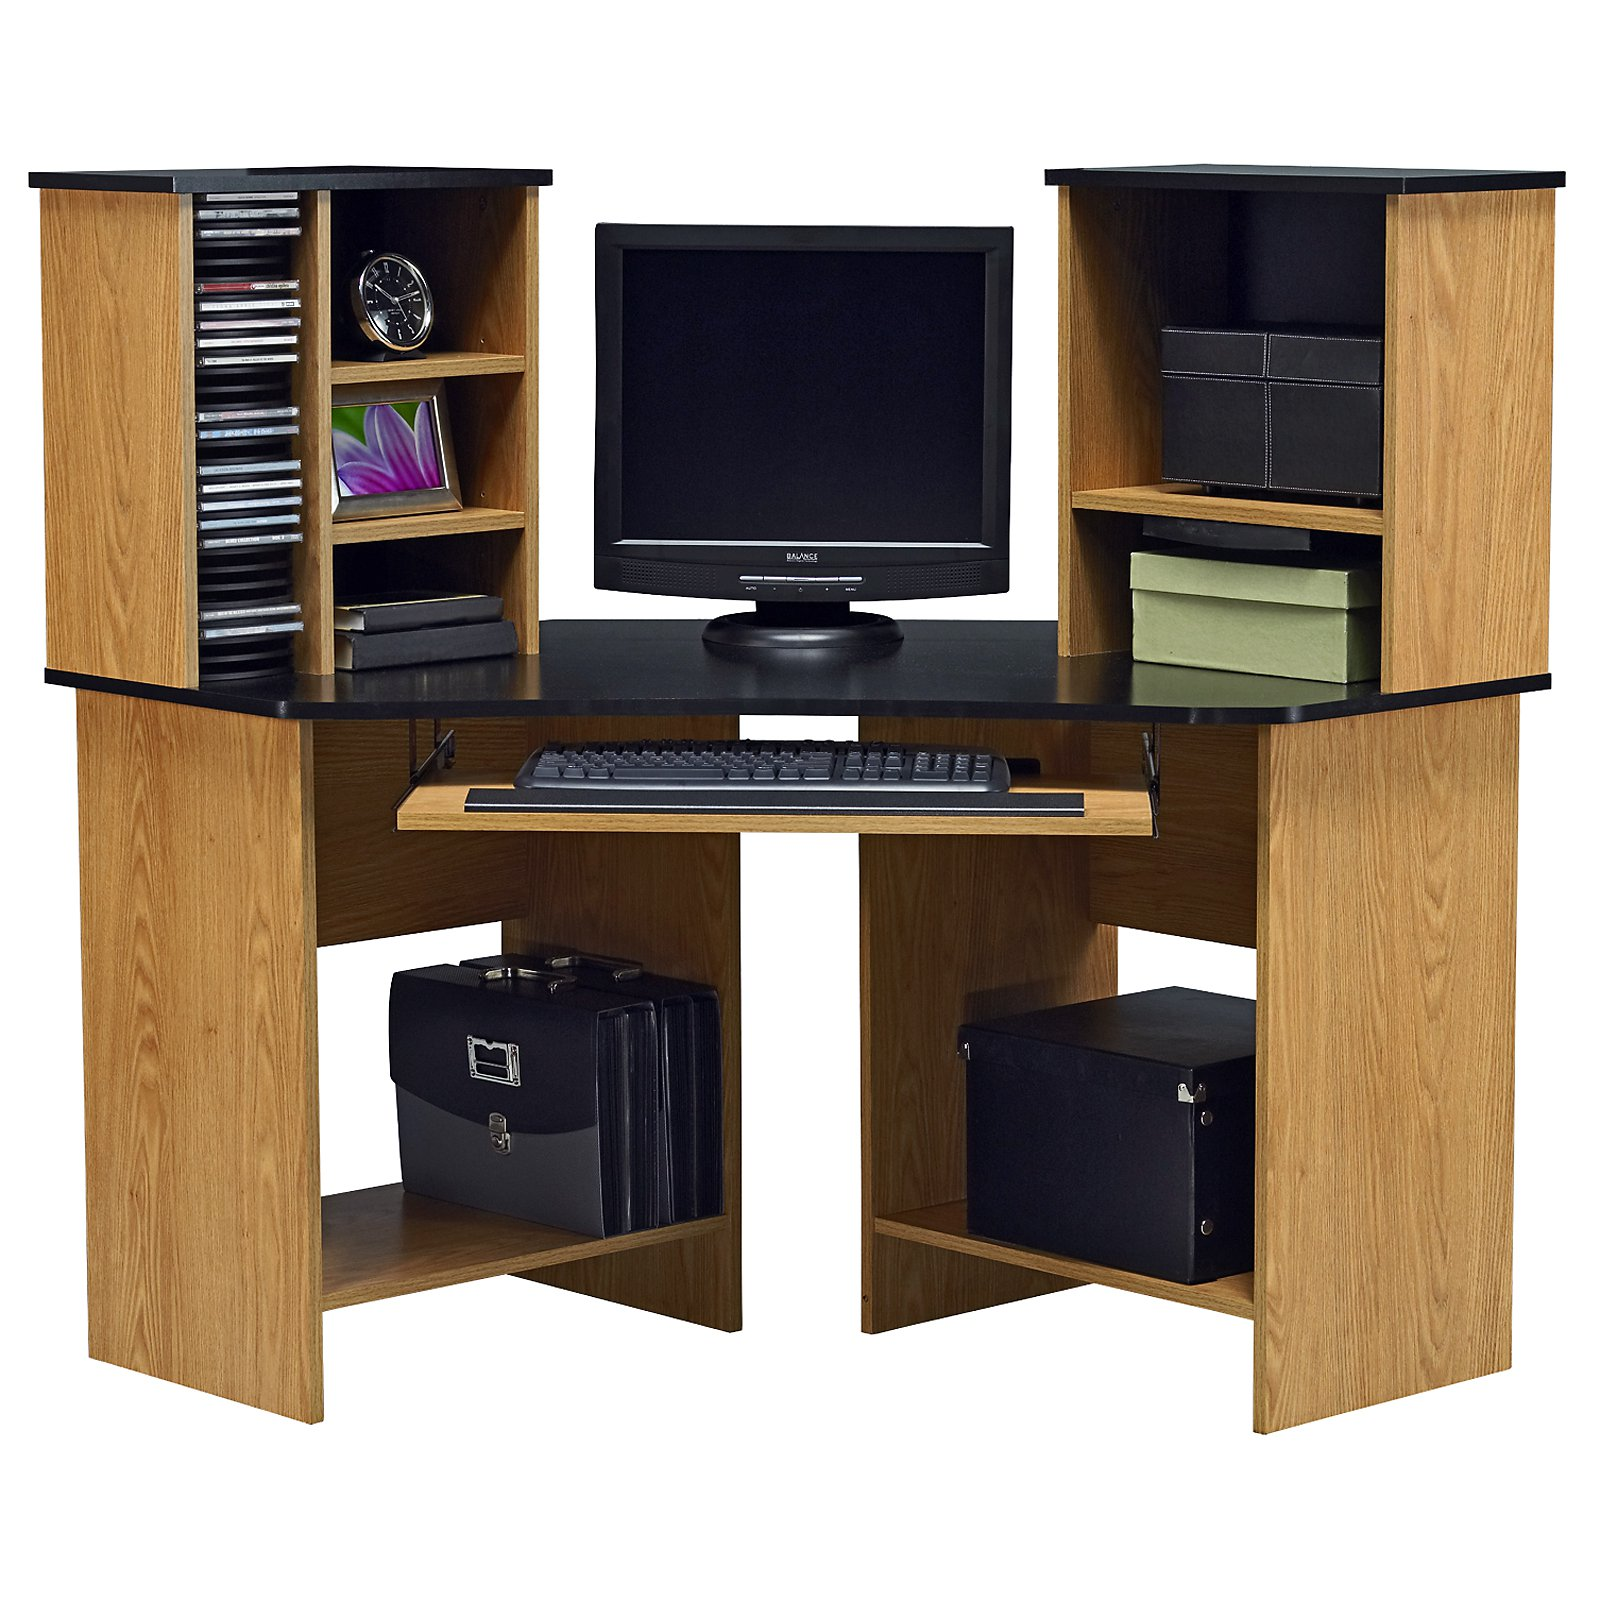 Cozy Ameriwood Corner Computer Desk and Hutch-Oak and Black at Hayneedle corner computer desk with hutch